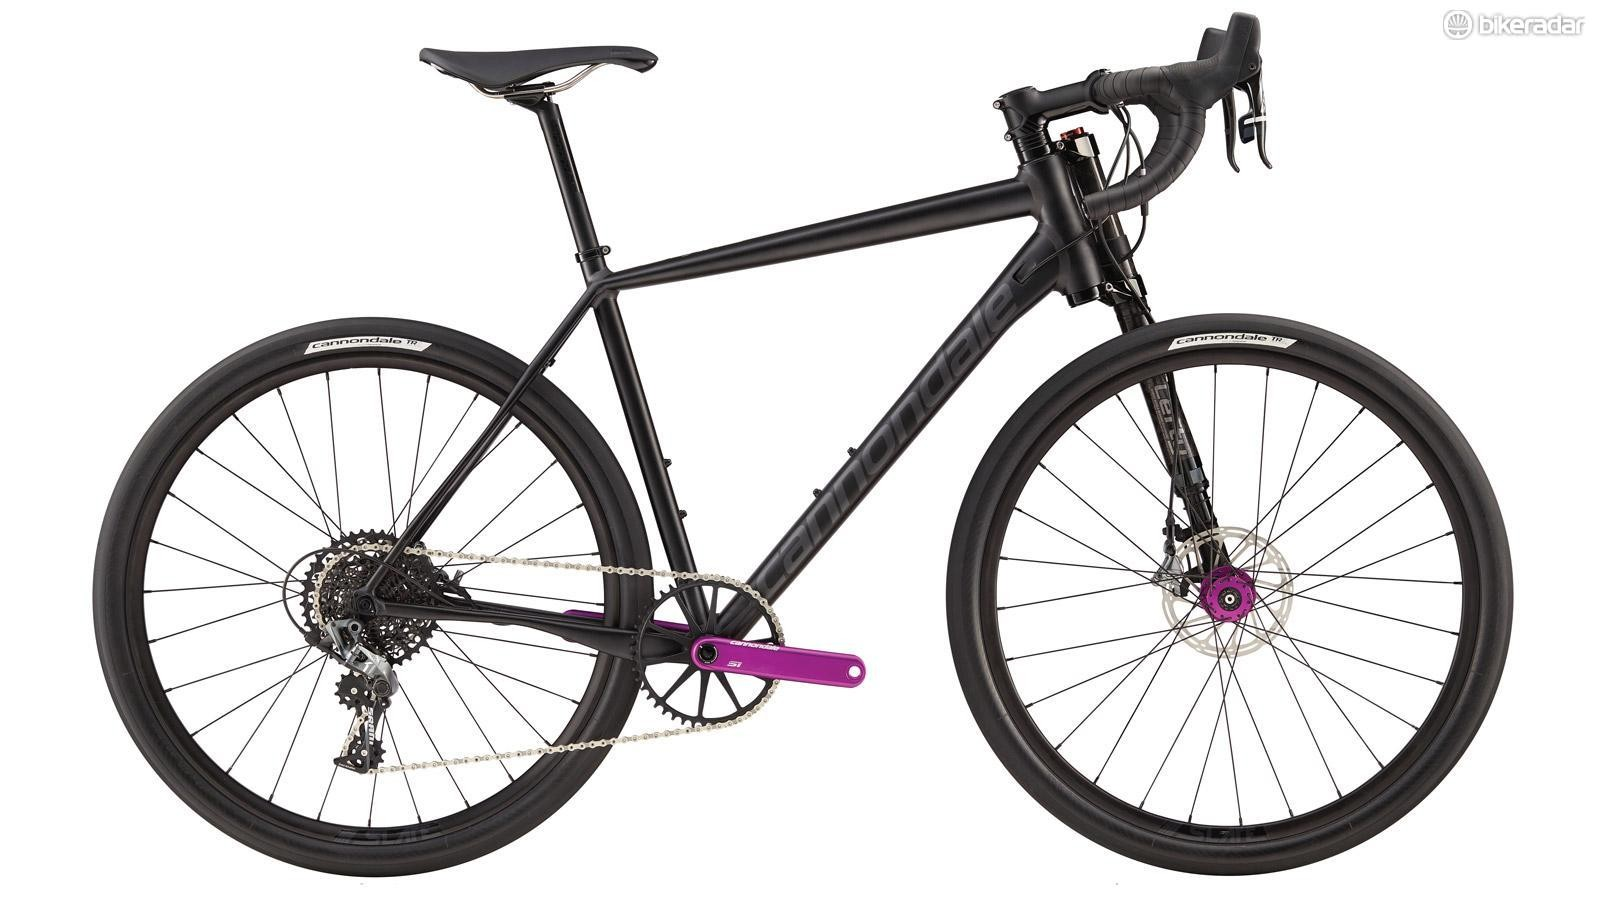 This year's most wanted gravel/adventure bike: the Cannondale Slate